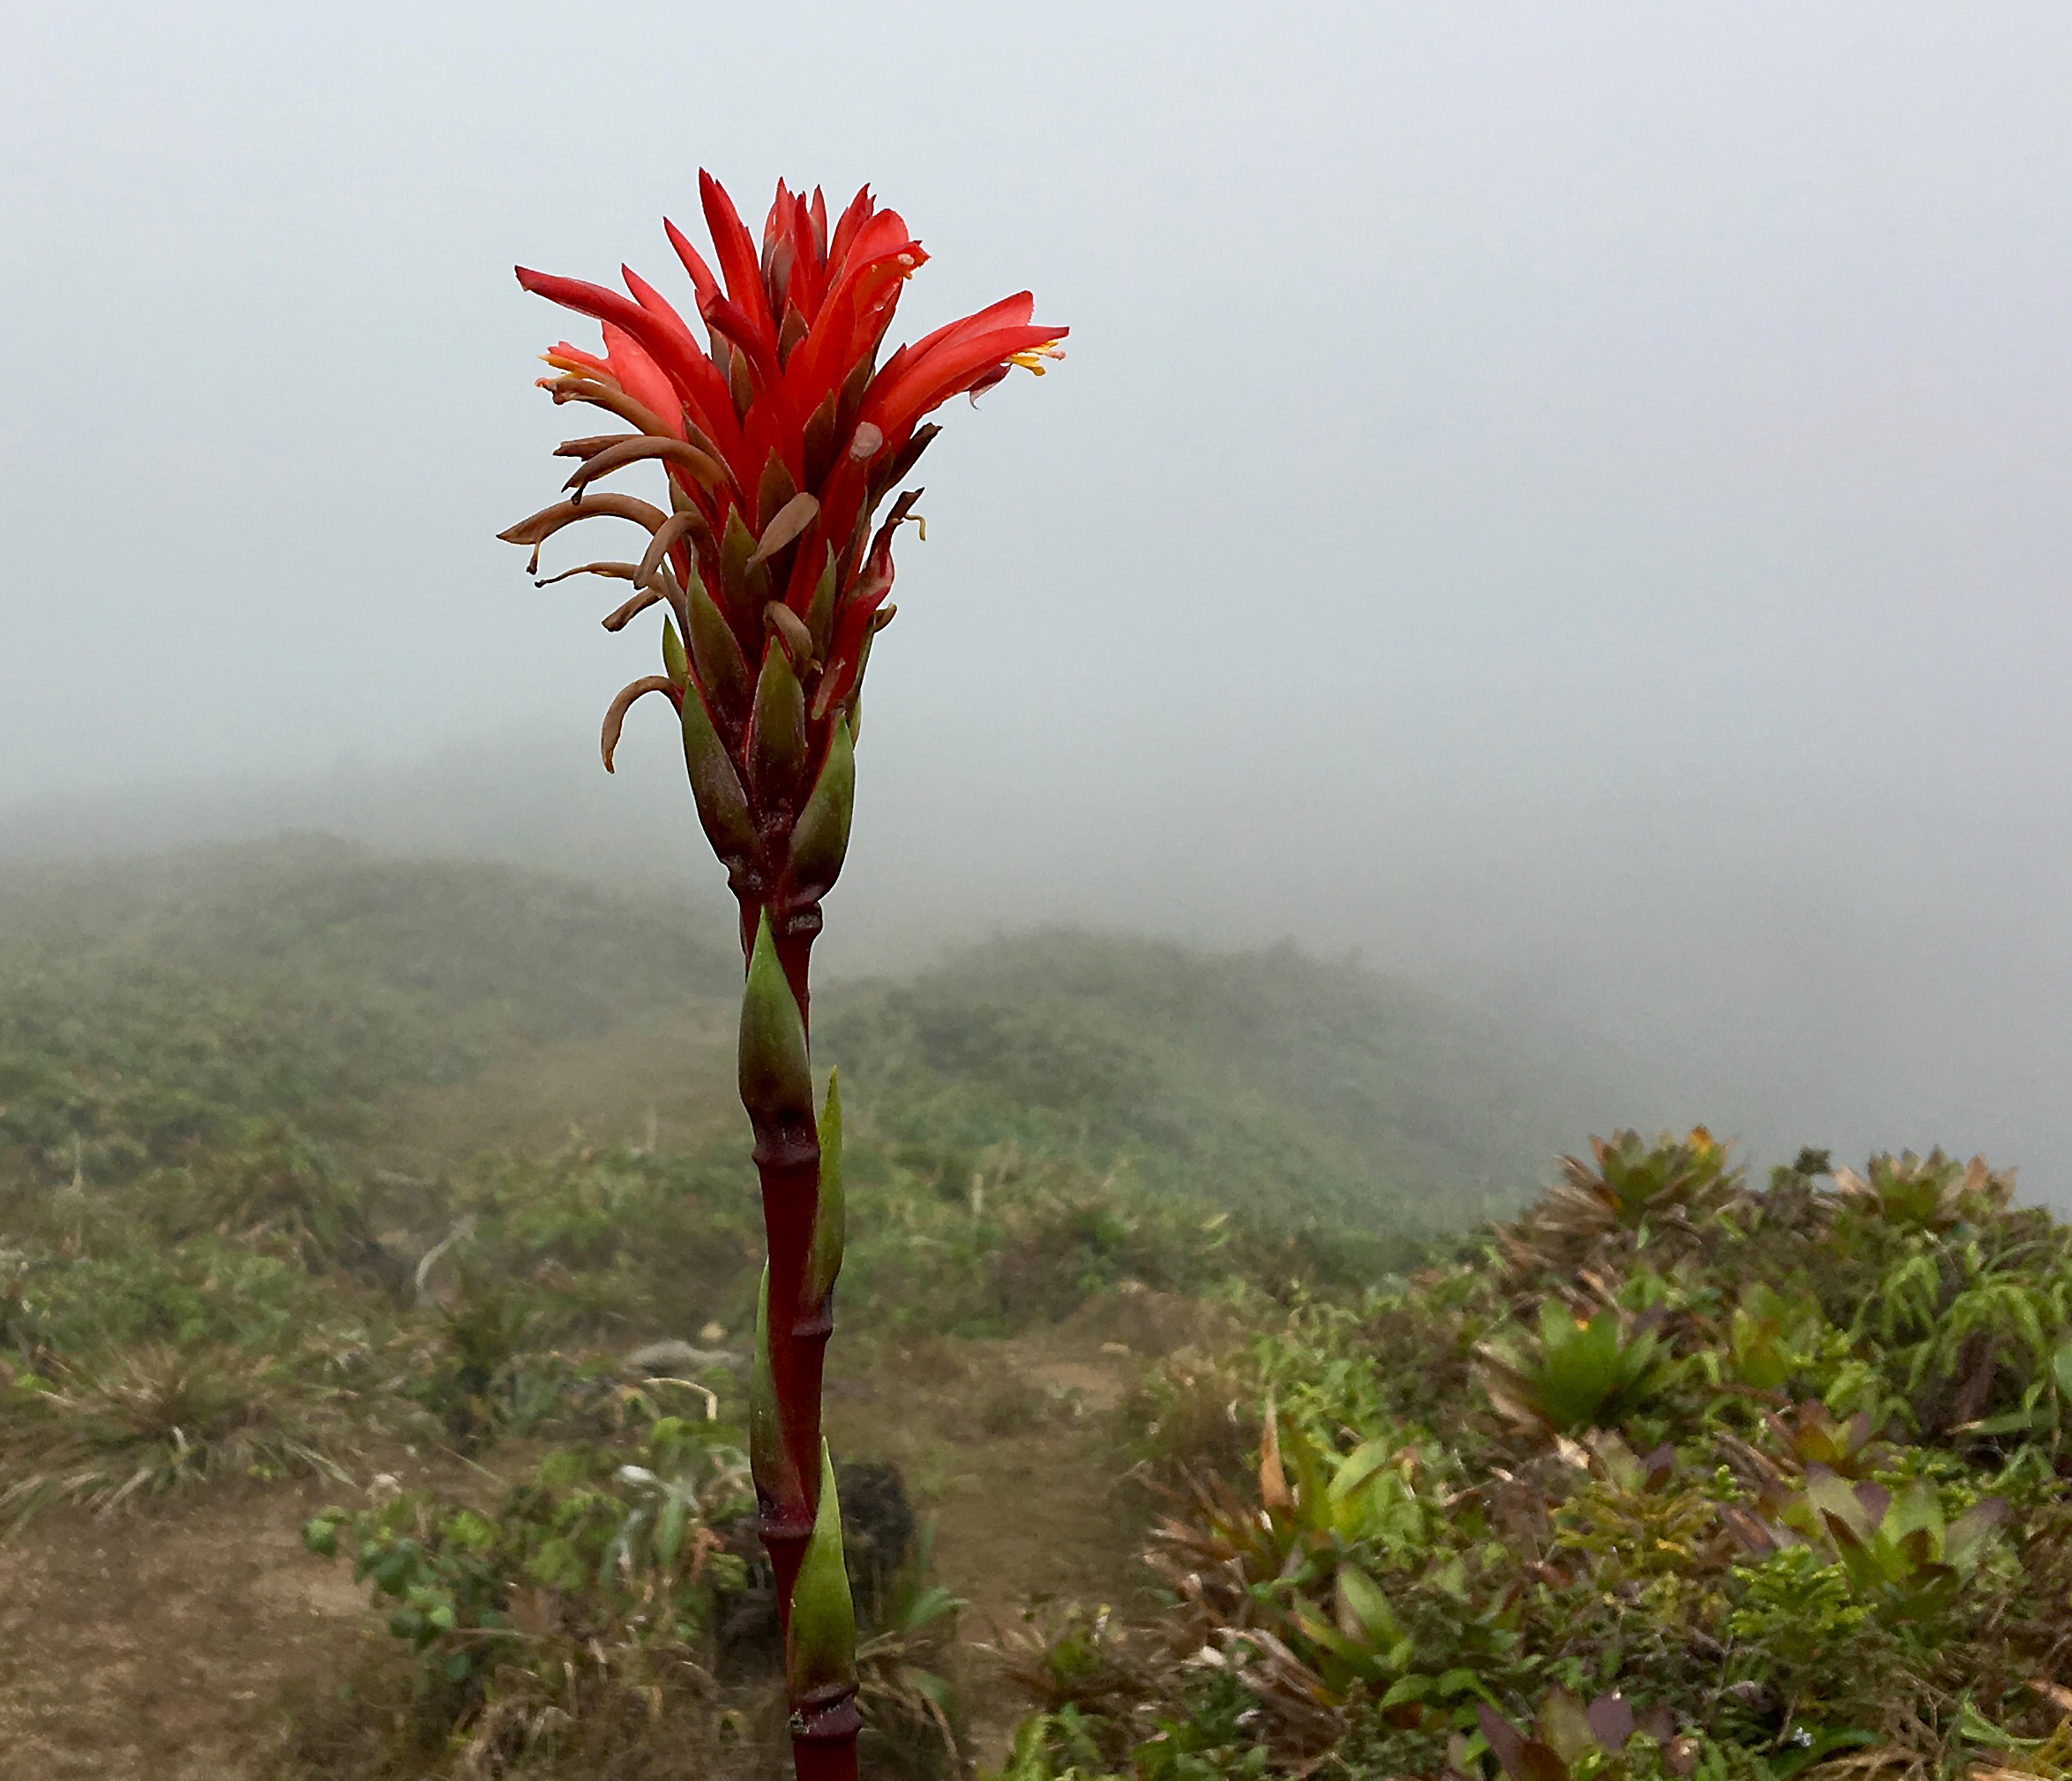 MOUNTAIN PINEAPPLE (Pitcairnia bifrons), Basse-Terre, Guadeloupe, March 2017